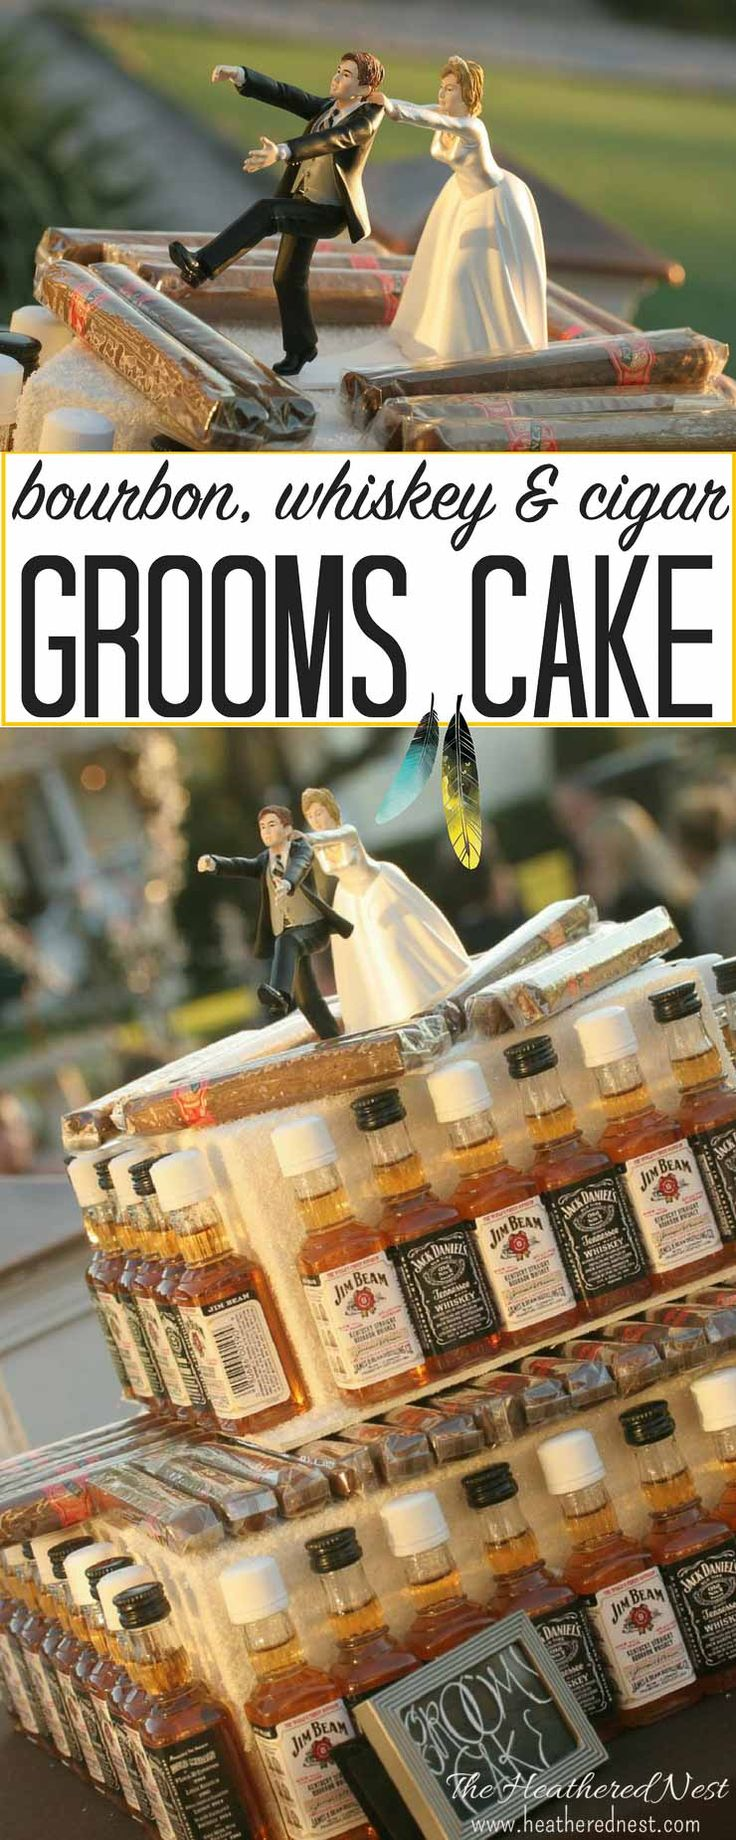 THIS may be the most AMAZING grooms cake I've ever seen!!!! Whiskey, bourbon and cigars!! This DIY groom's cake will be the life of the party at a wedding!! Talk about a popular wedding detail!! FULL TUTORIAL from heatherednest.com